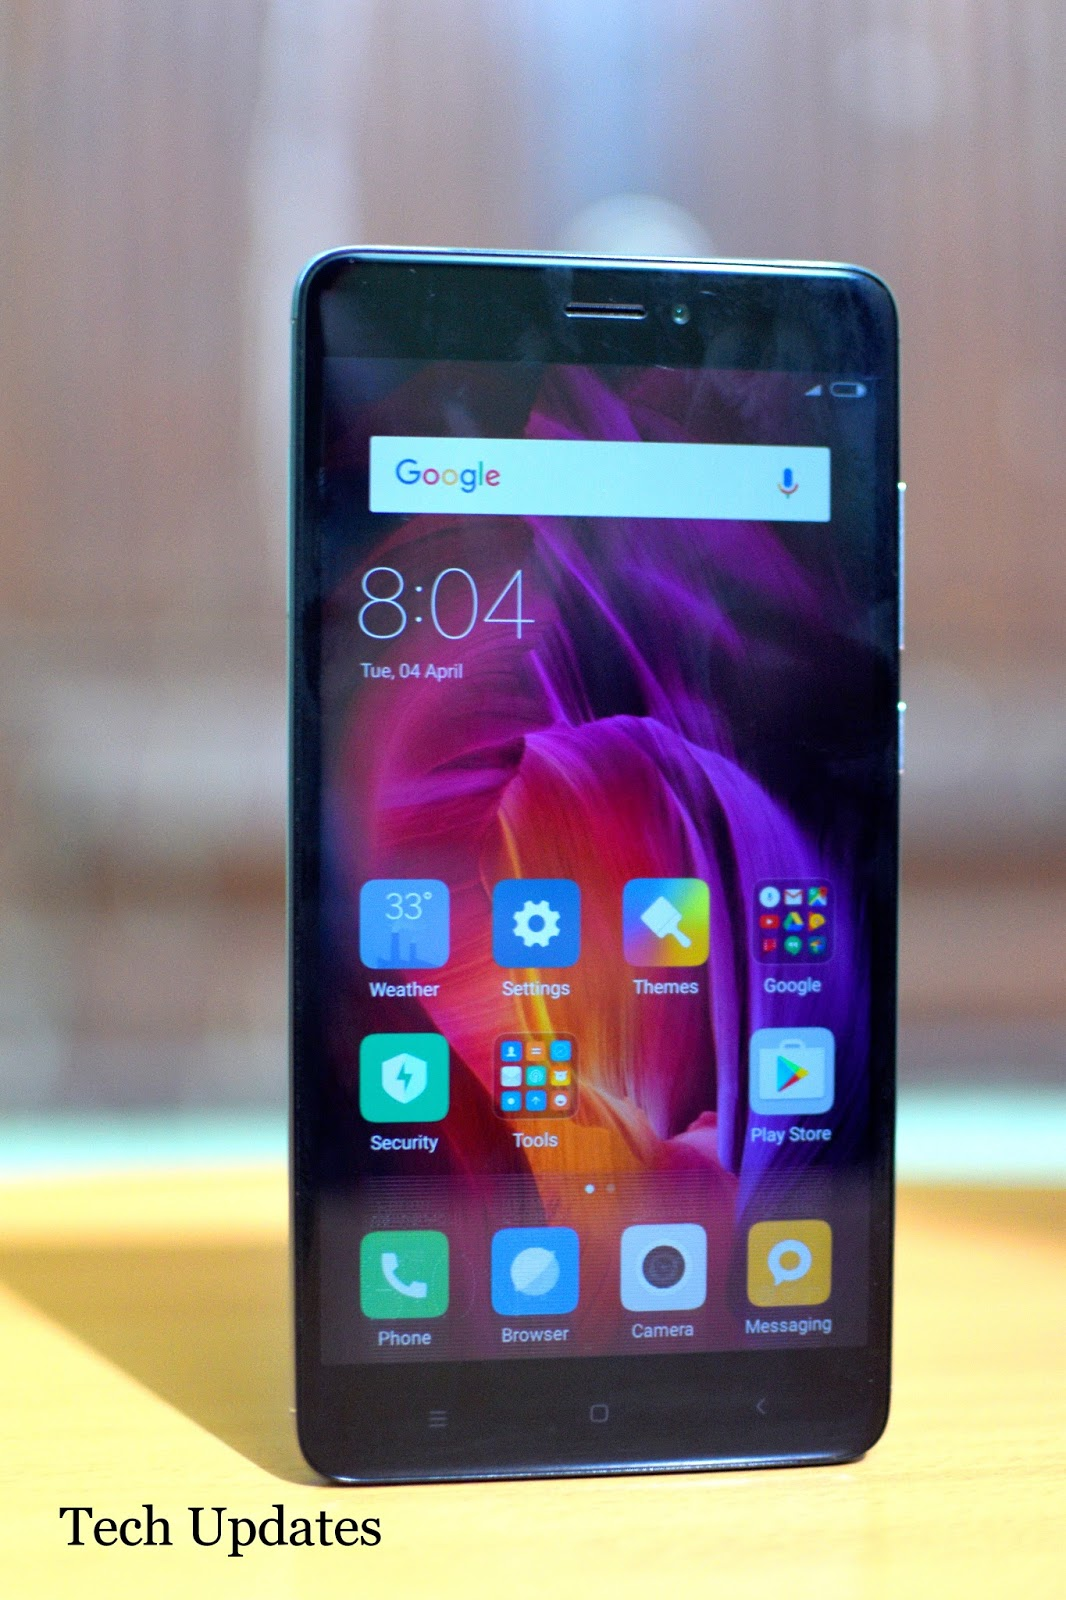 Xiaomi redmi note 4 and redmi 4x launched in indonesia tech updates xiaomi has introduced redmi 4x and redmi note 4 smartphone in indonesia which will available later this month from erafone priced at rp 2009000 rs 9814 stopboris Choice Image